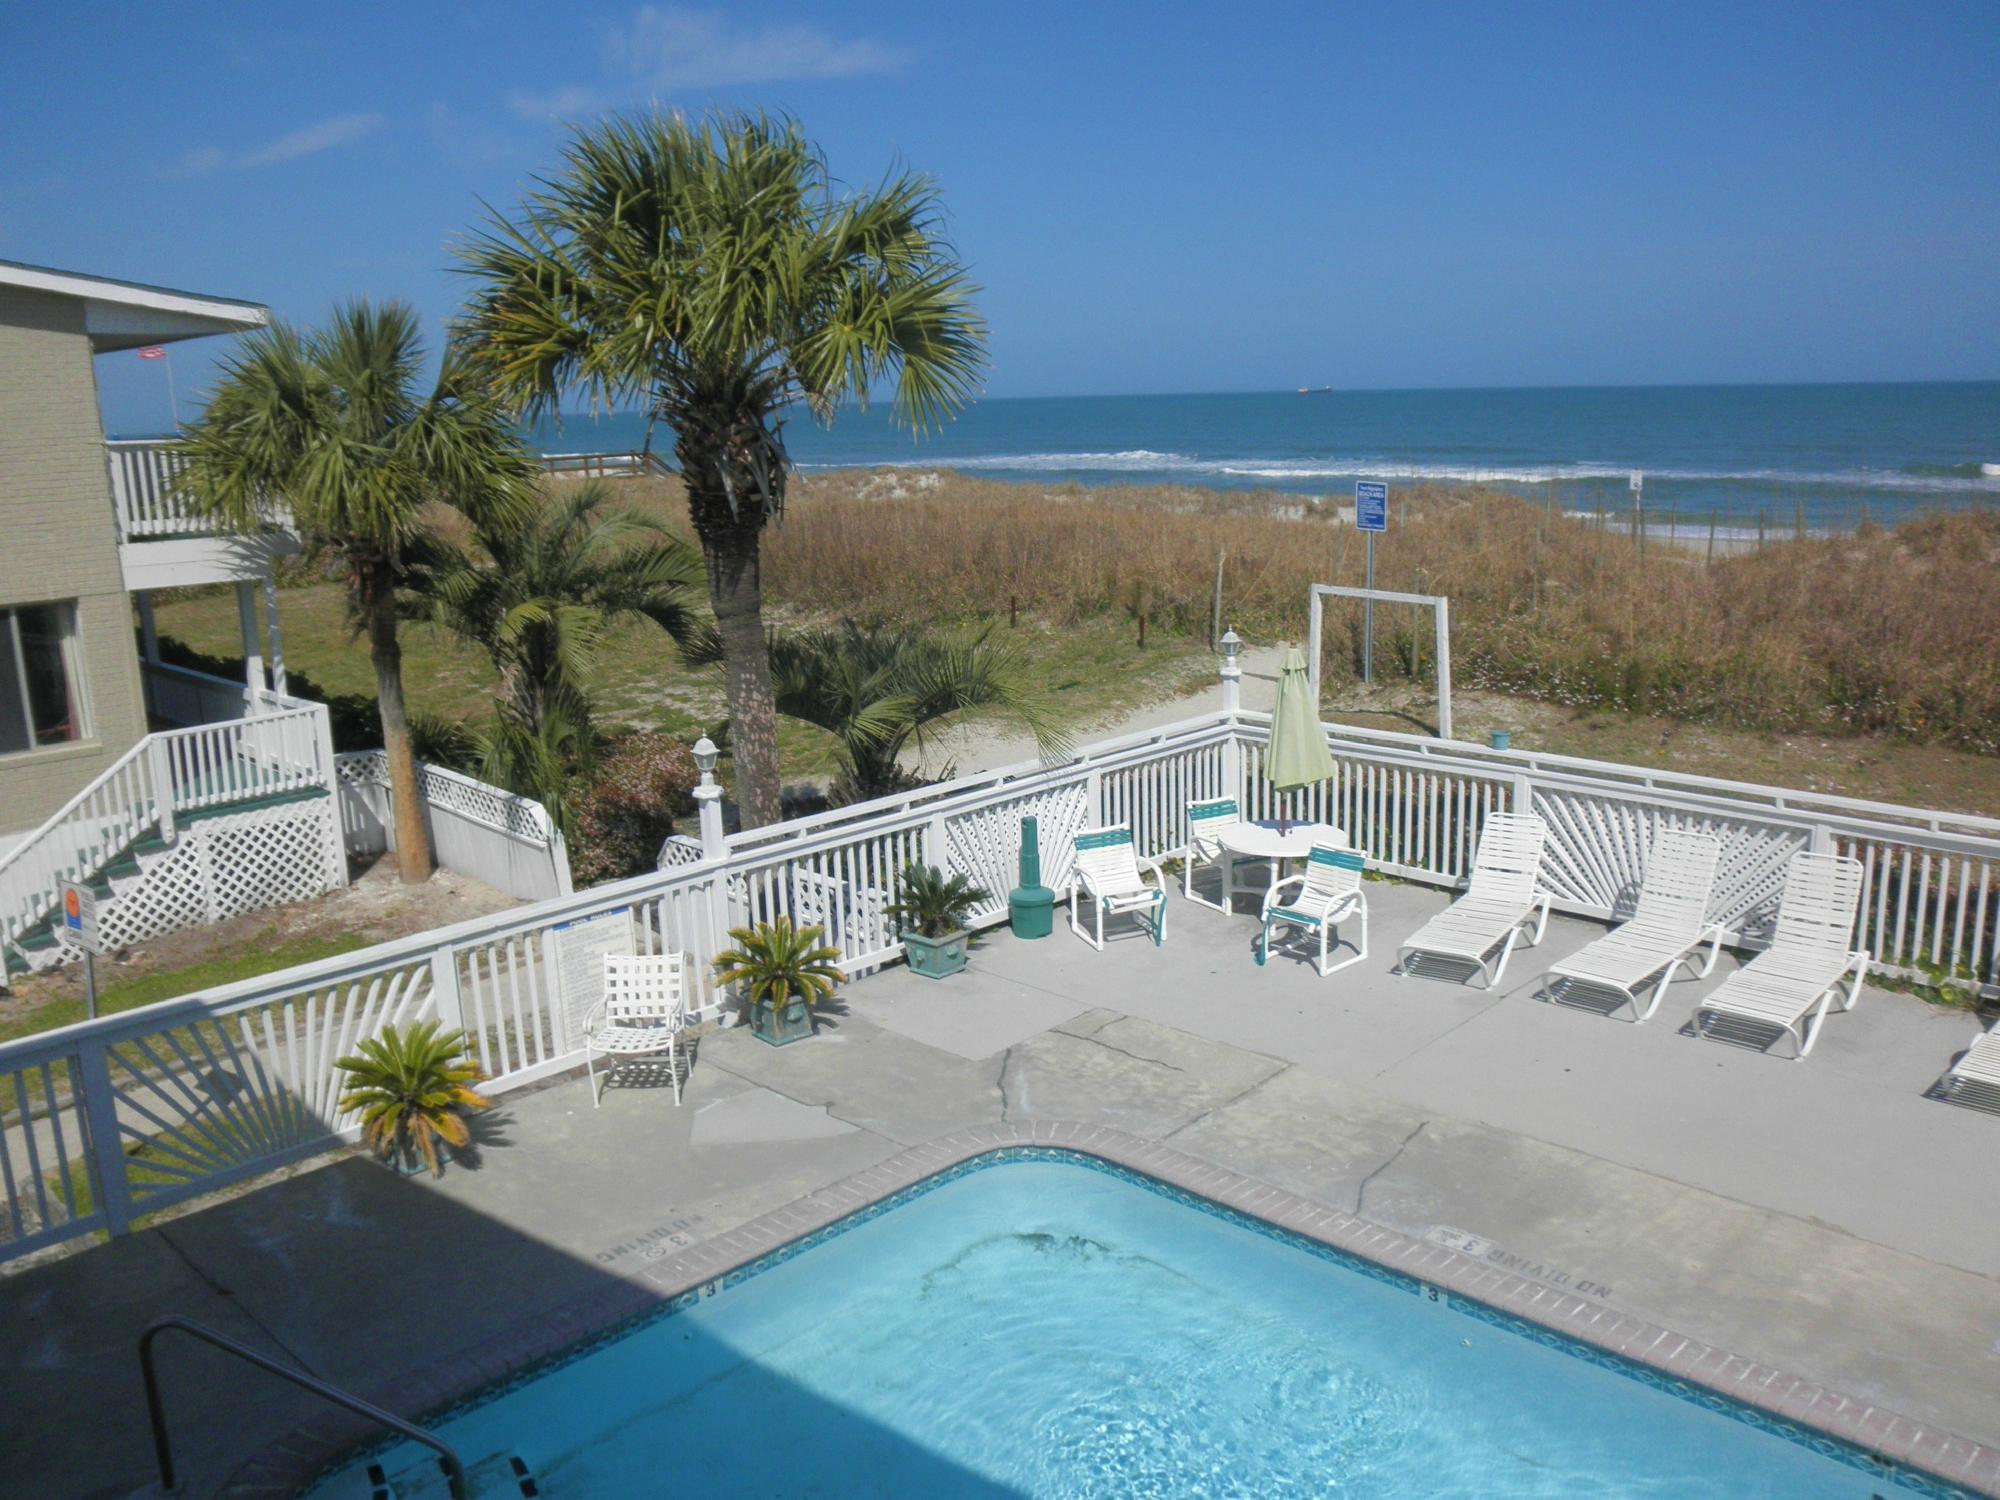 dolphin lane motel - updated 2017 reviews (carolina beach, nc